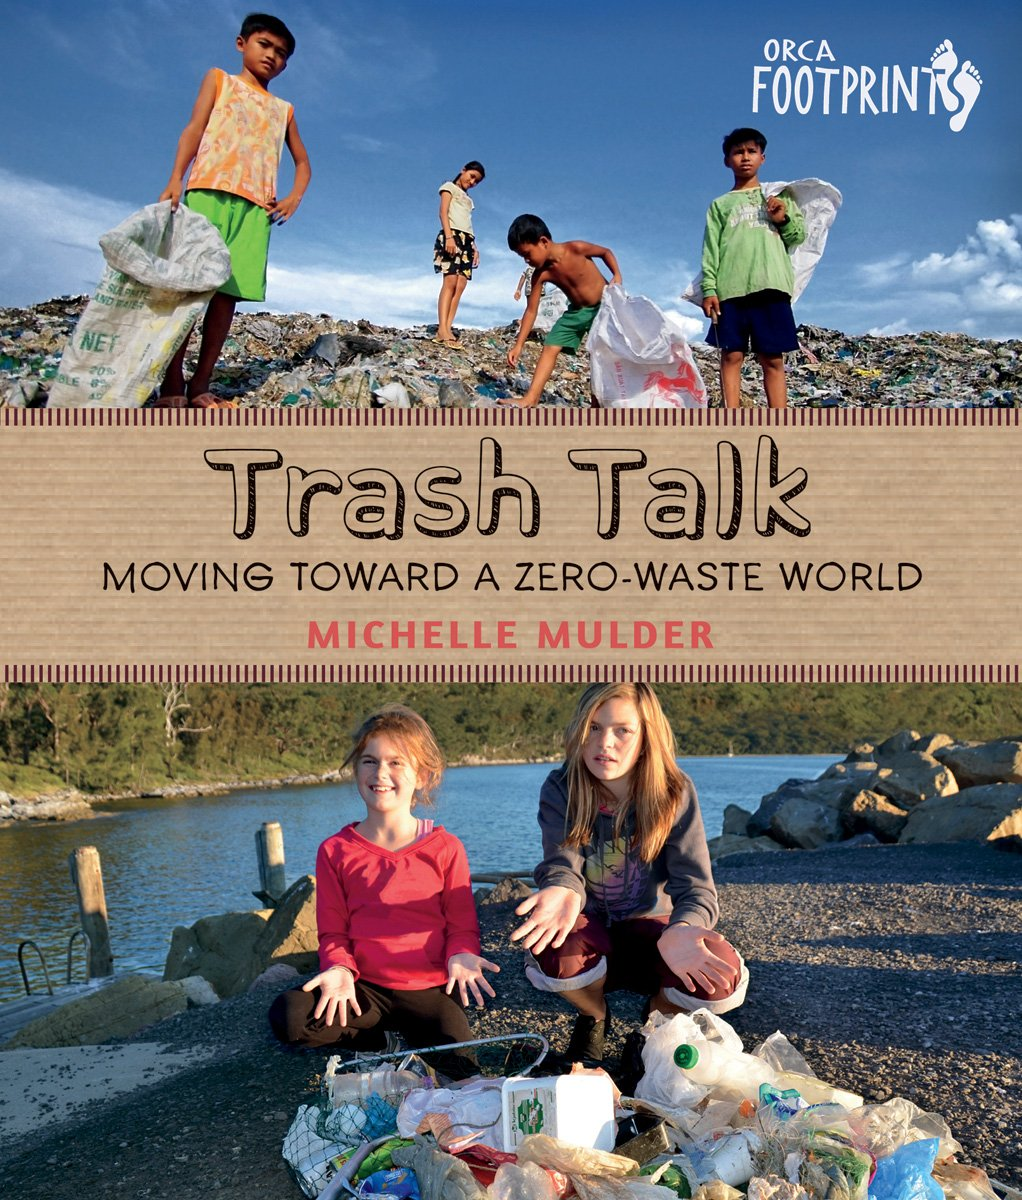 Trash Talk: Moving Toward a Zero-Waste World (Orca Footprints) by Orca Book Publishers (Image #1)